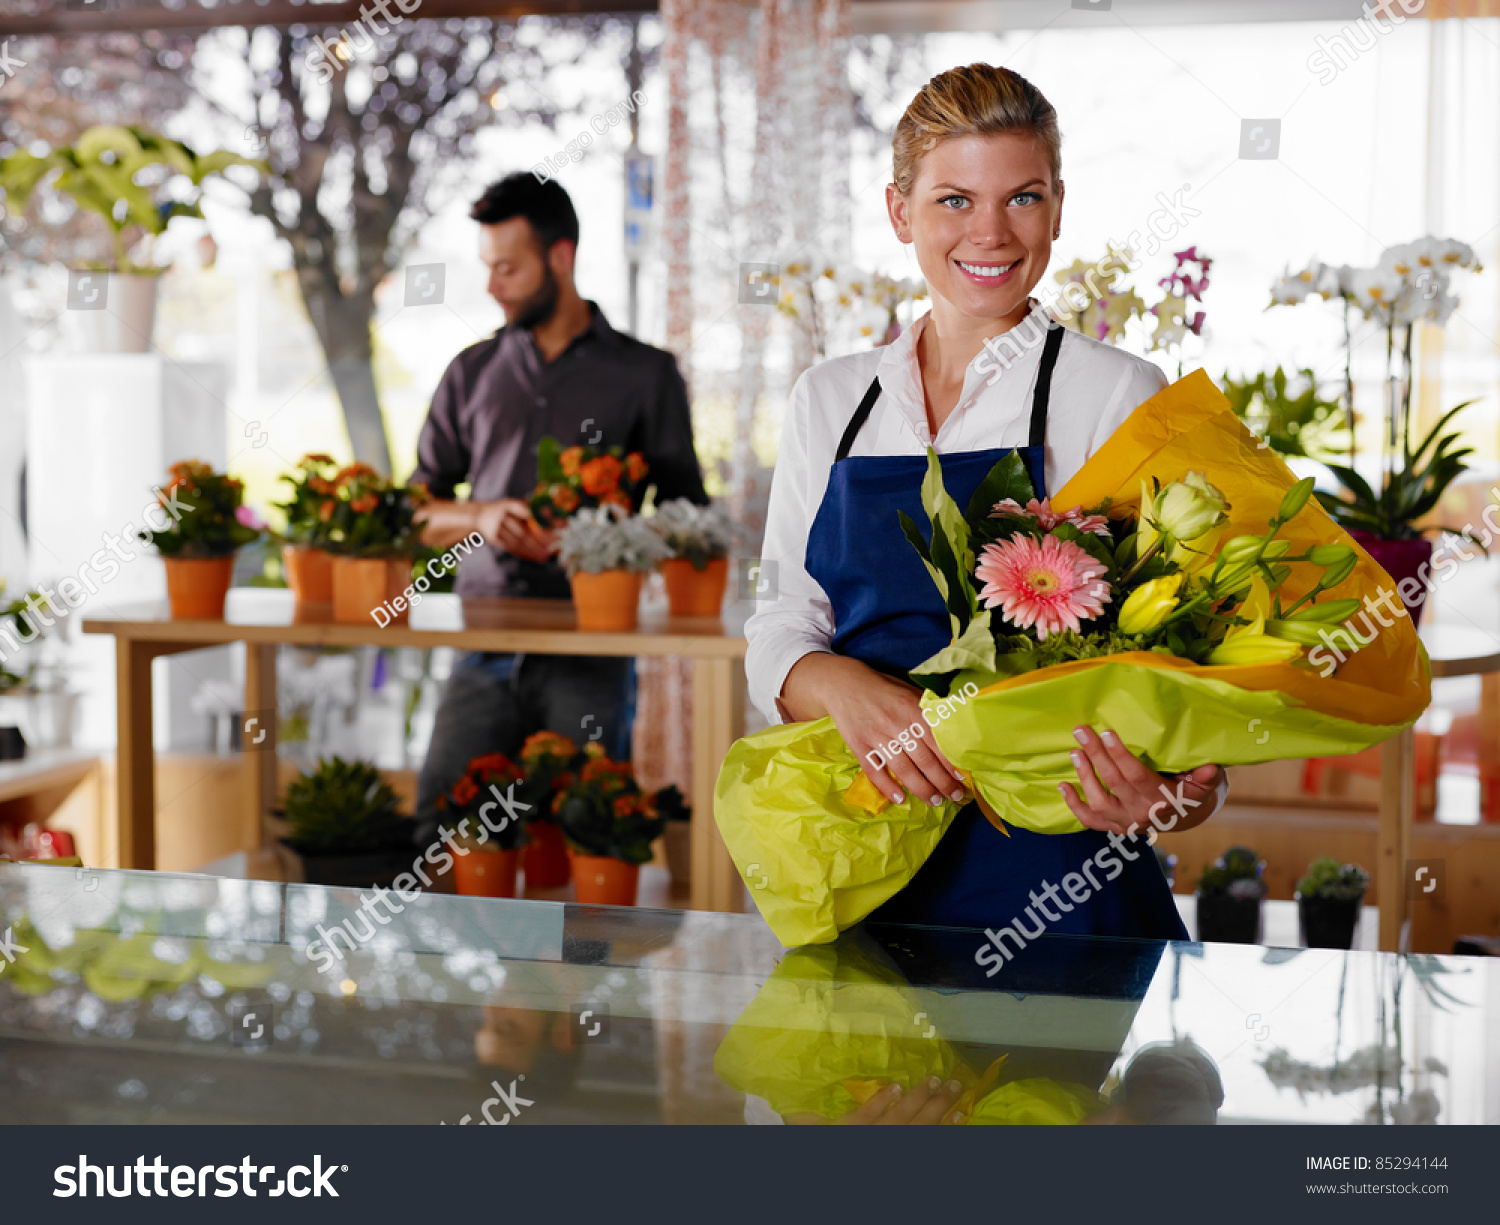 female s assistant working florist holding stock photo female s assistant working as florist and holding bouquet customer in background horizontal shape